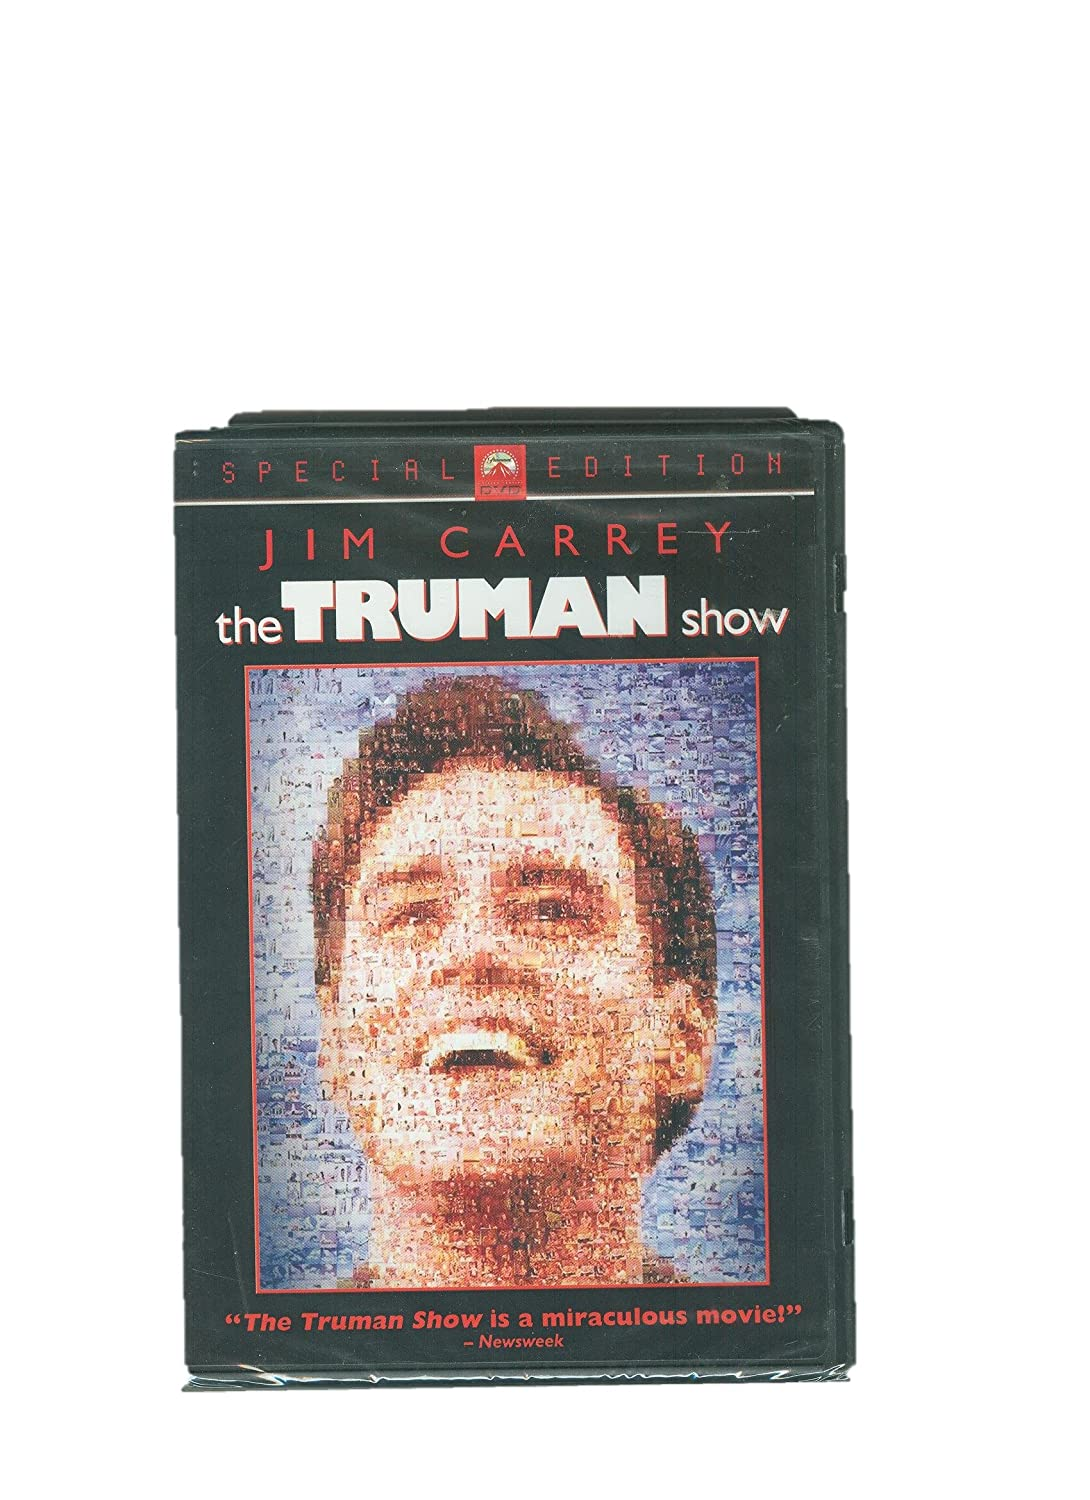 com the truman show special collector s edition jim com the truman show special collector s edition jim carrey ed harris laura linney noah emmerich natascha mcelhone holland taylor